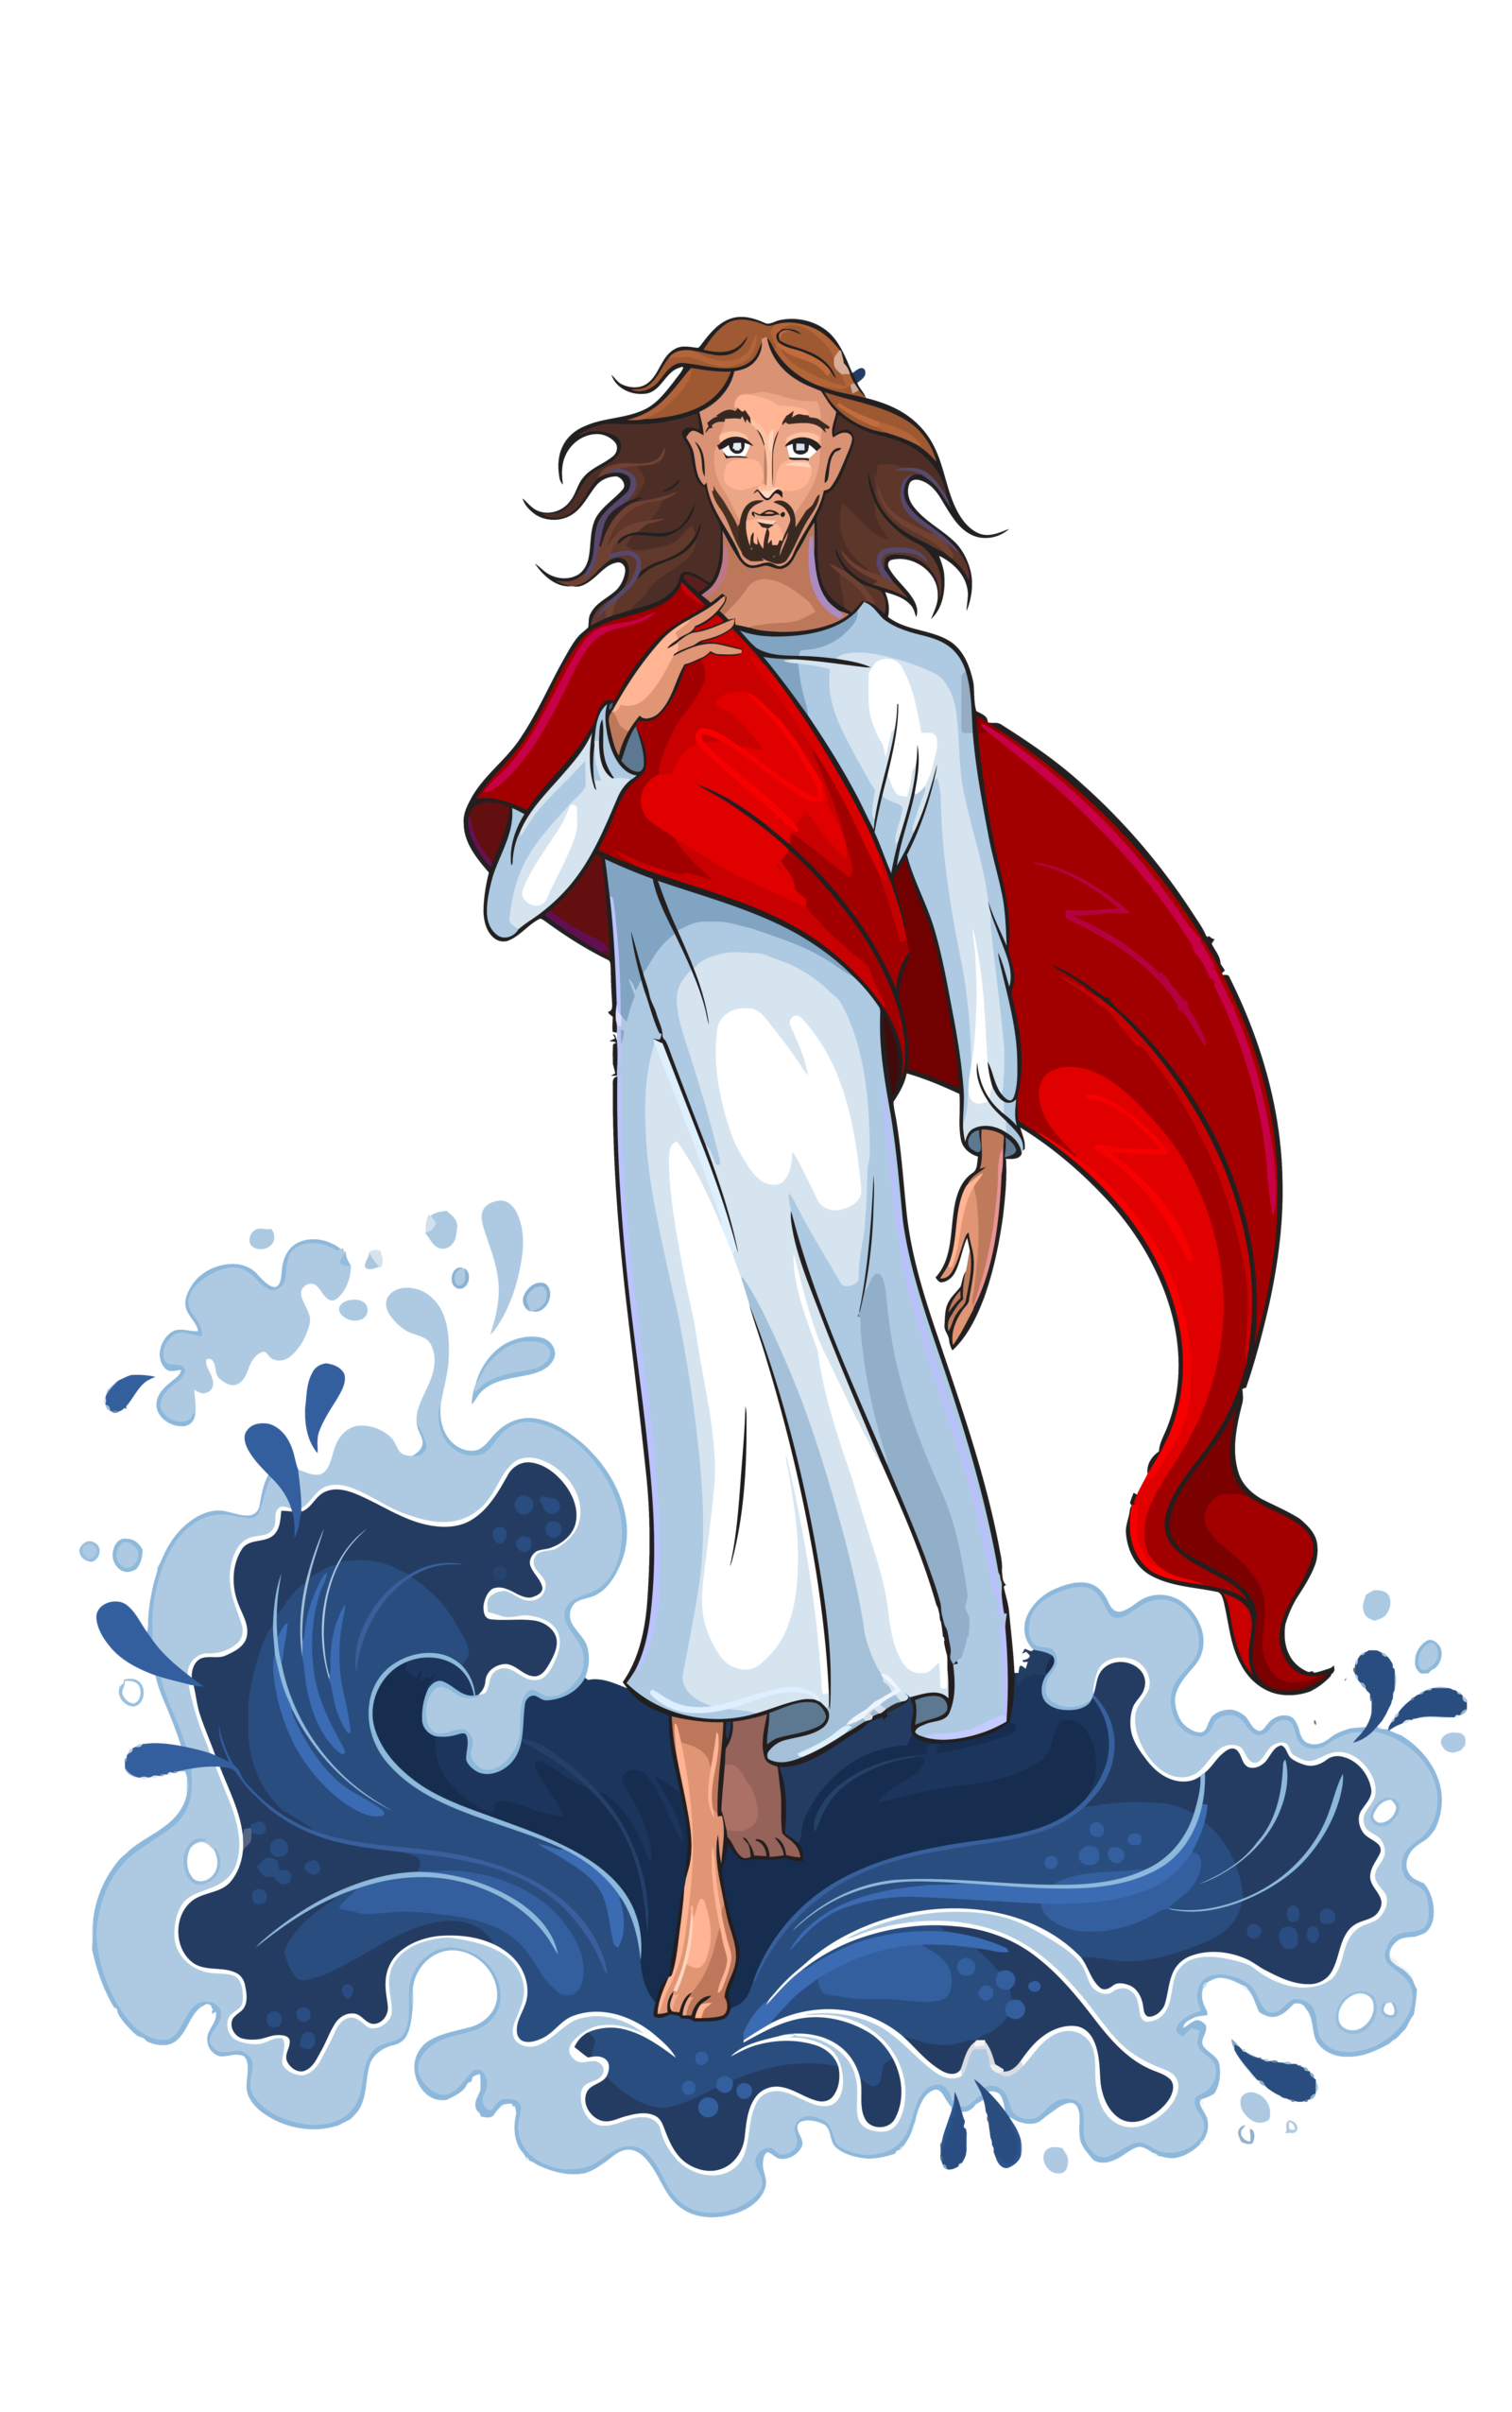 Image result for JESUS VECTOR | kmino 15 | Pinterest picture royalty free download